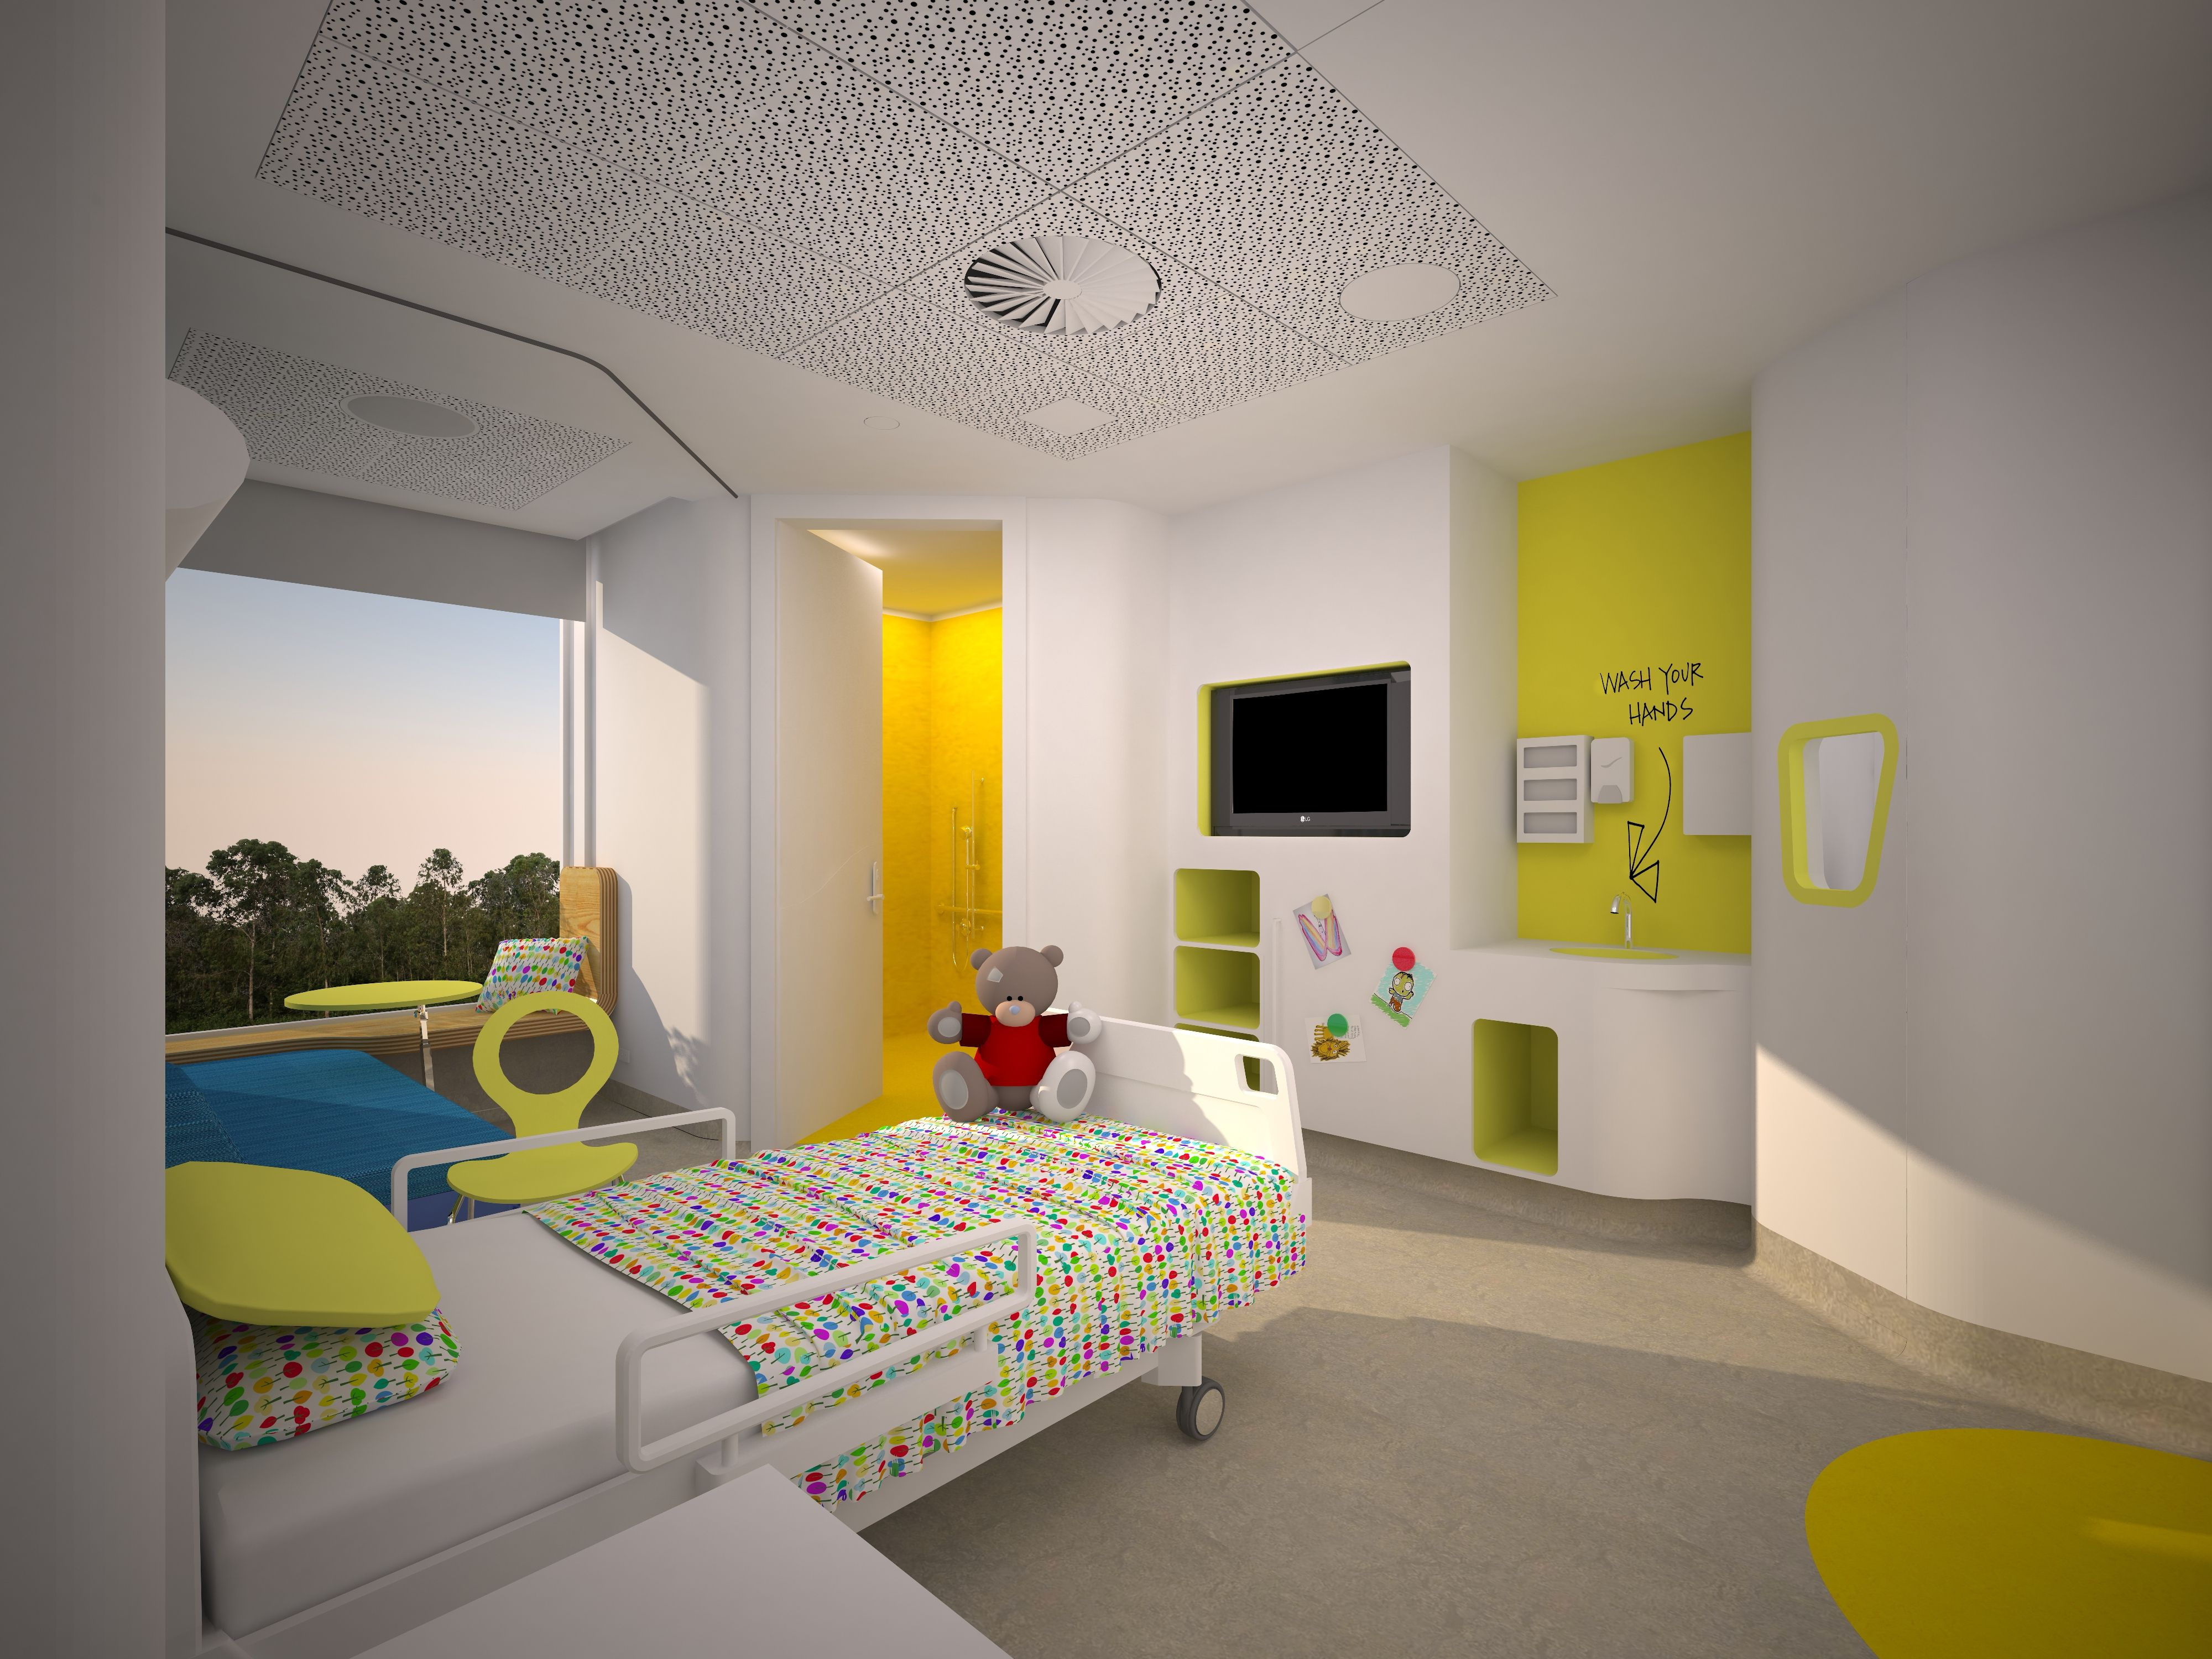 Uplifting Room Yellow And Sunny Modern Mental Hospital